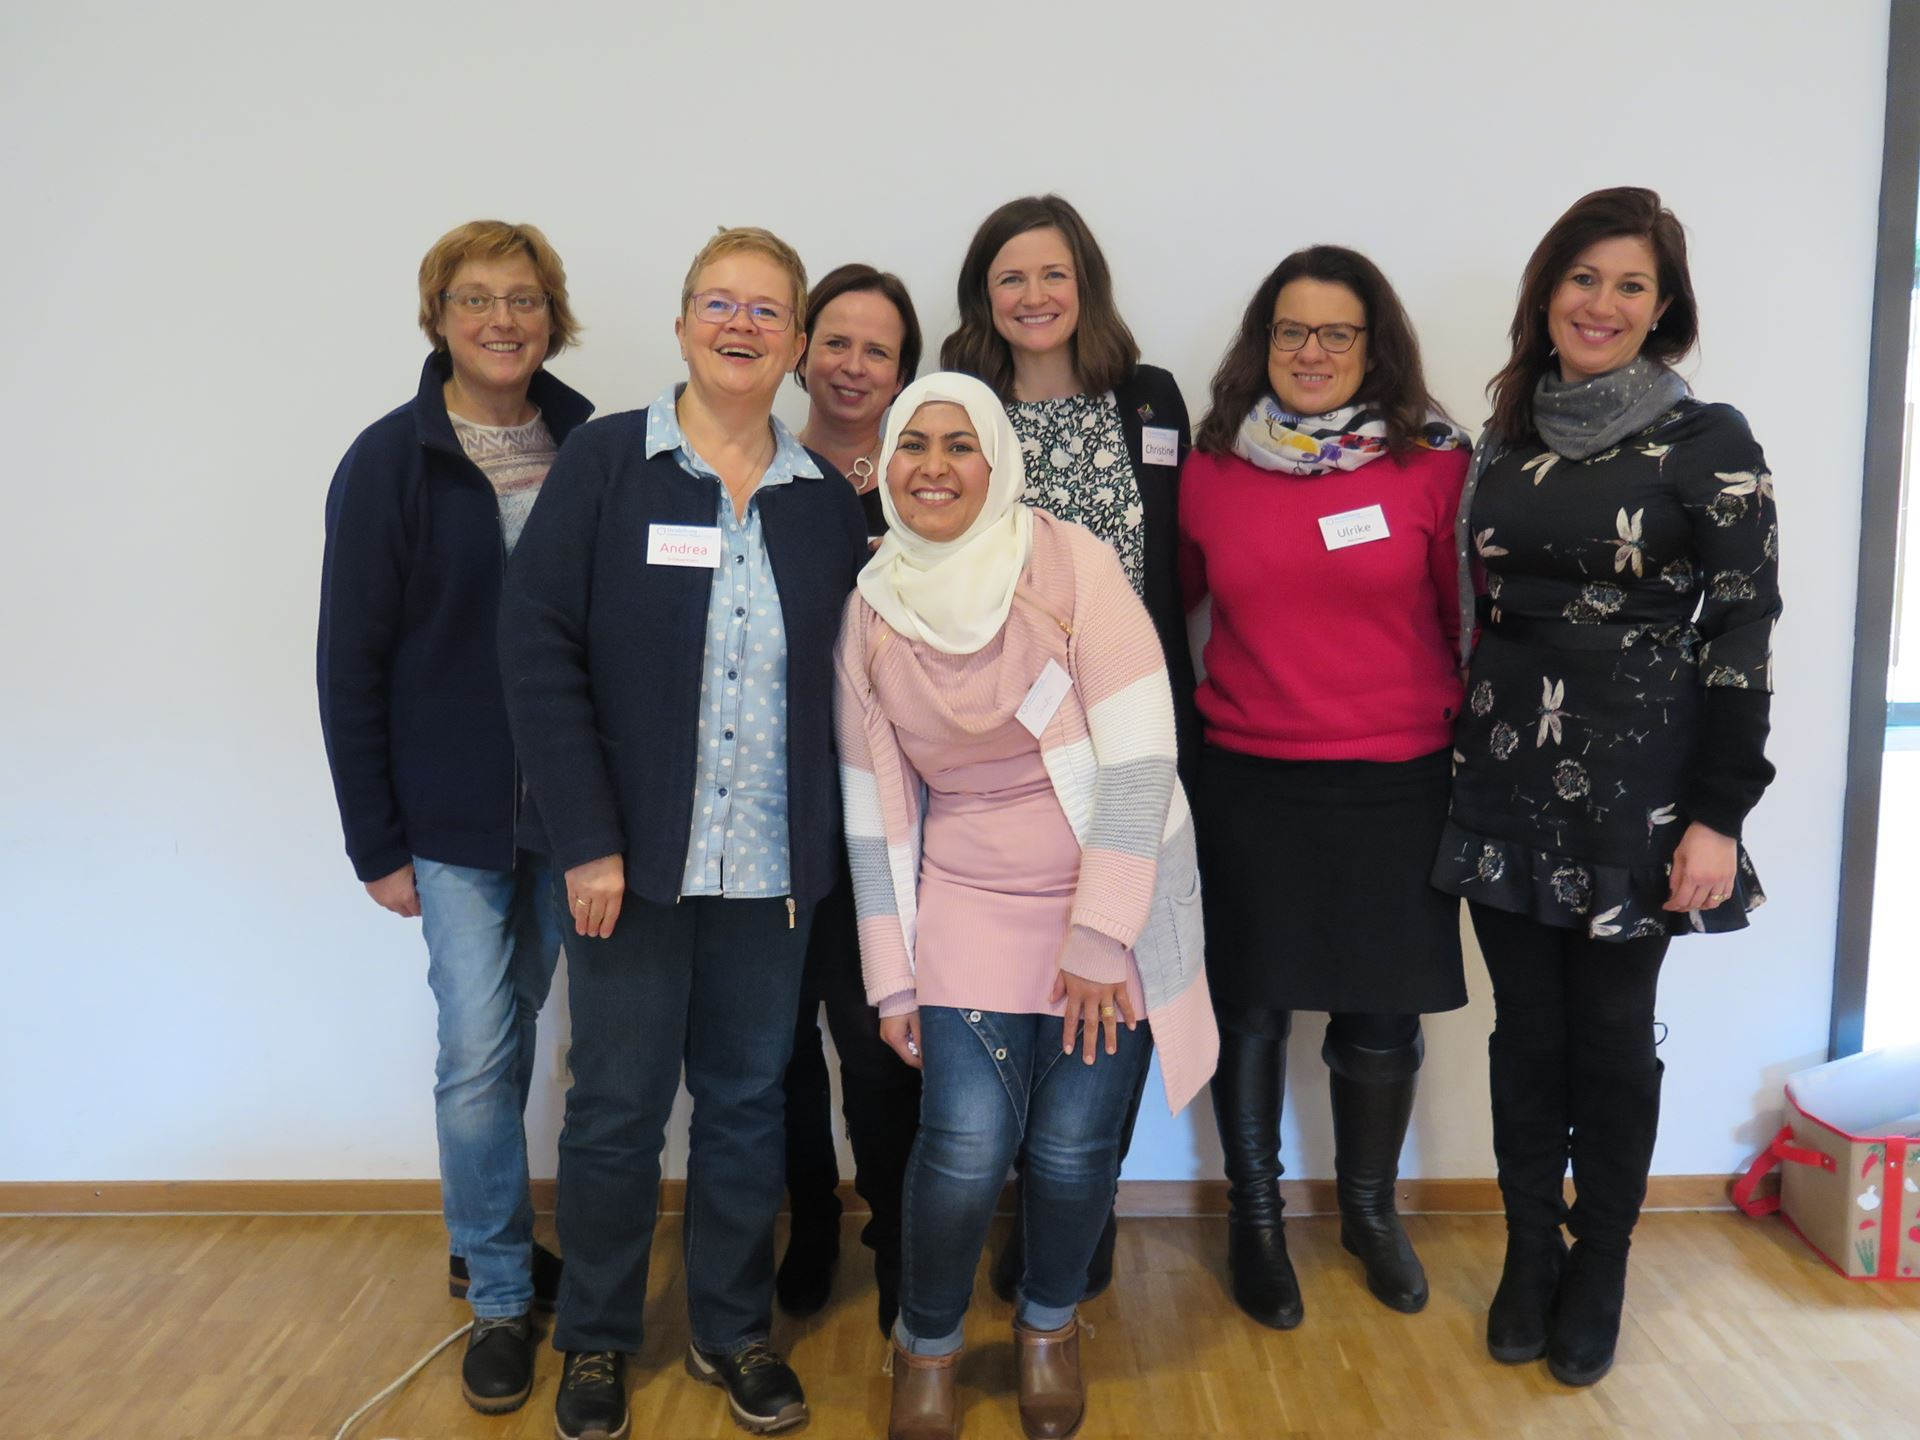 Heidelberg IWC Members with Miteinander in der VG Freinsheim Guest Speakers